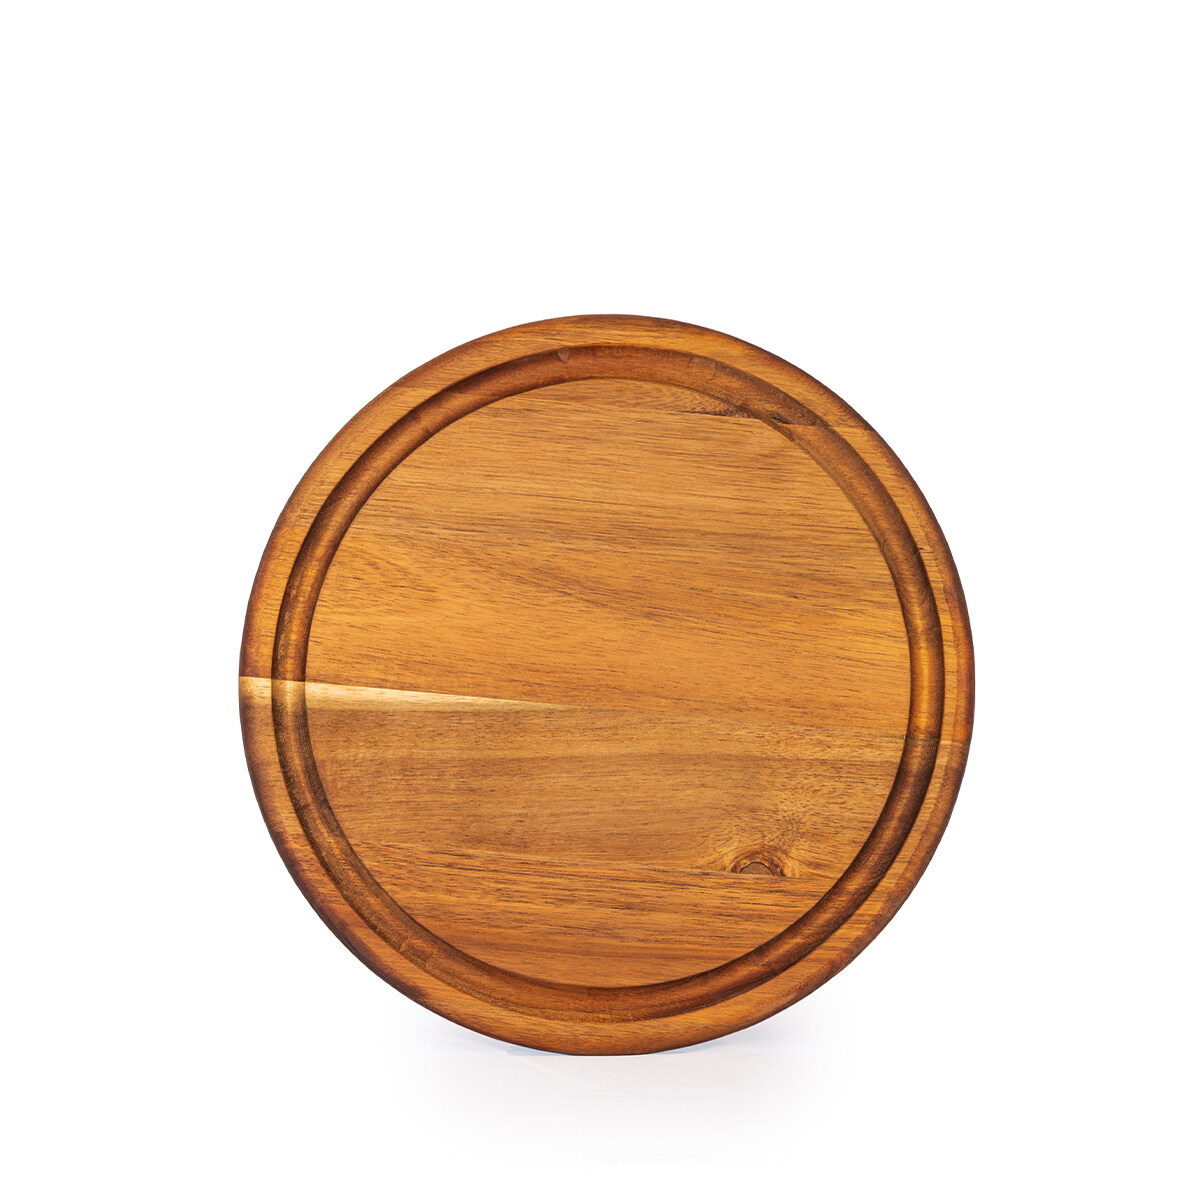 AIDEAS Cutting Board- GOSTOSA serving / chopping / wood / natural / platter / plate / acacia / dessert / coffee / dinner